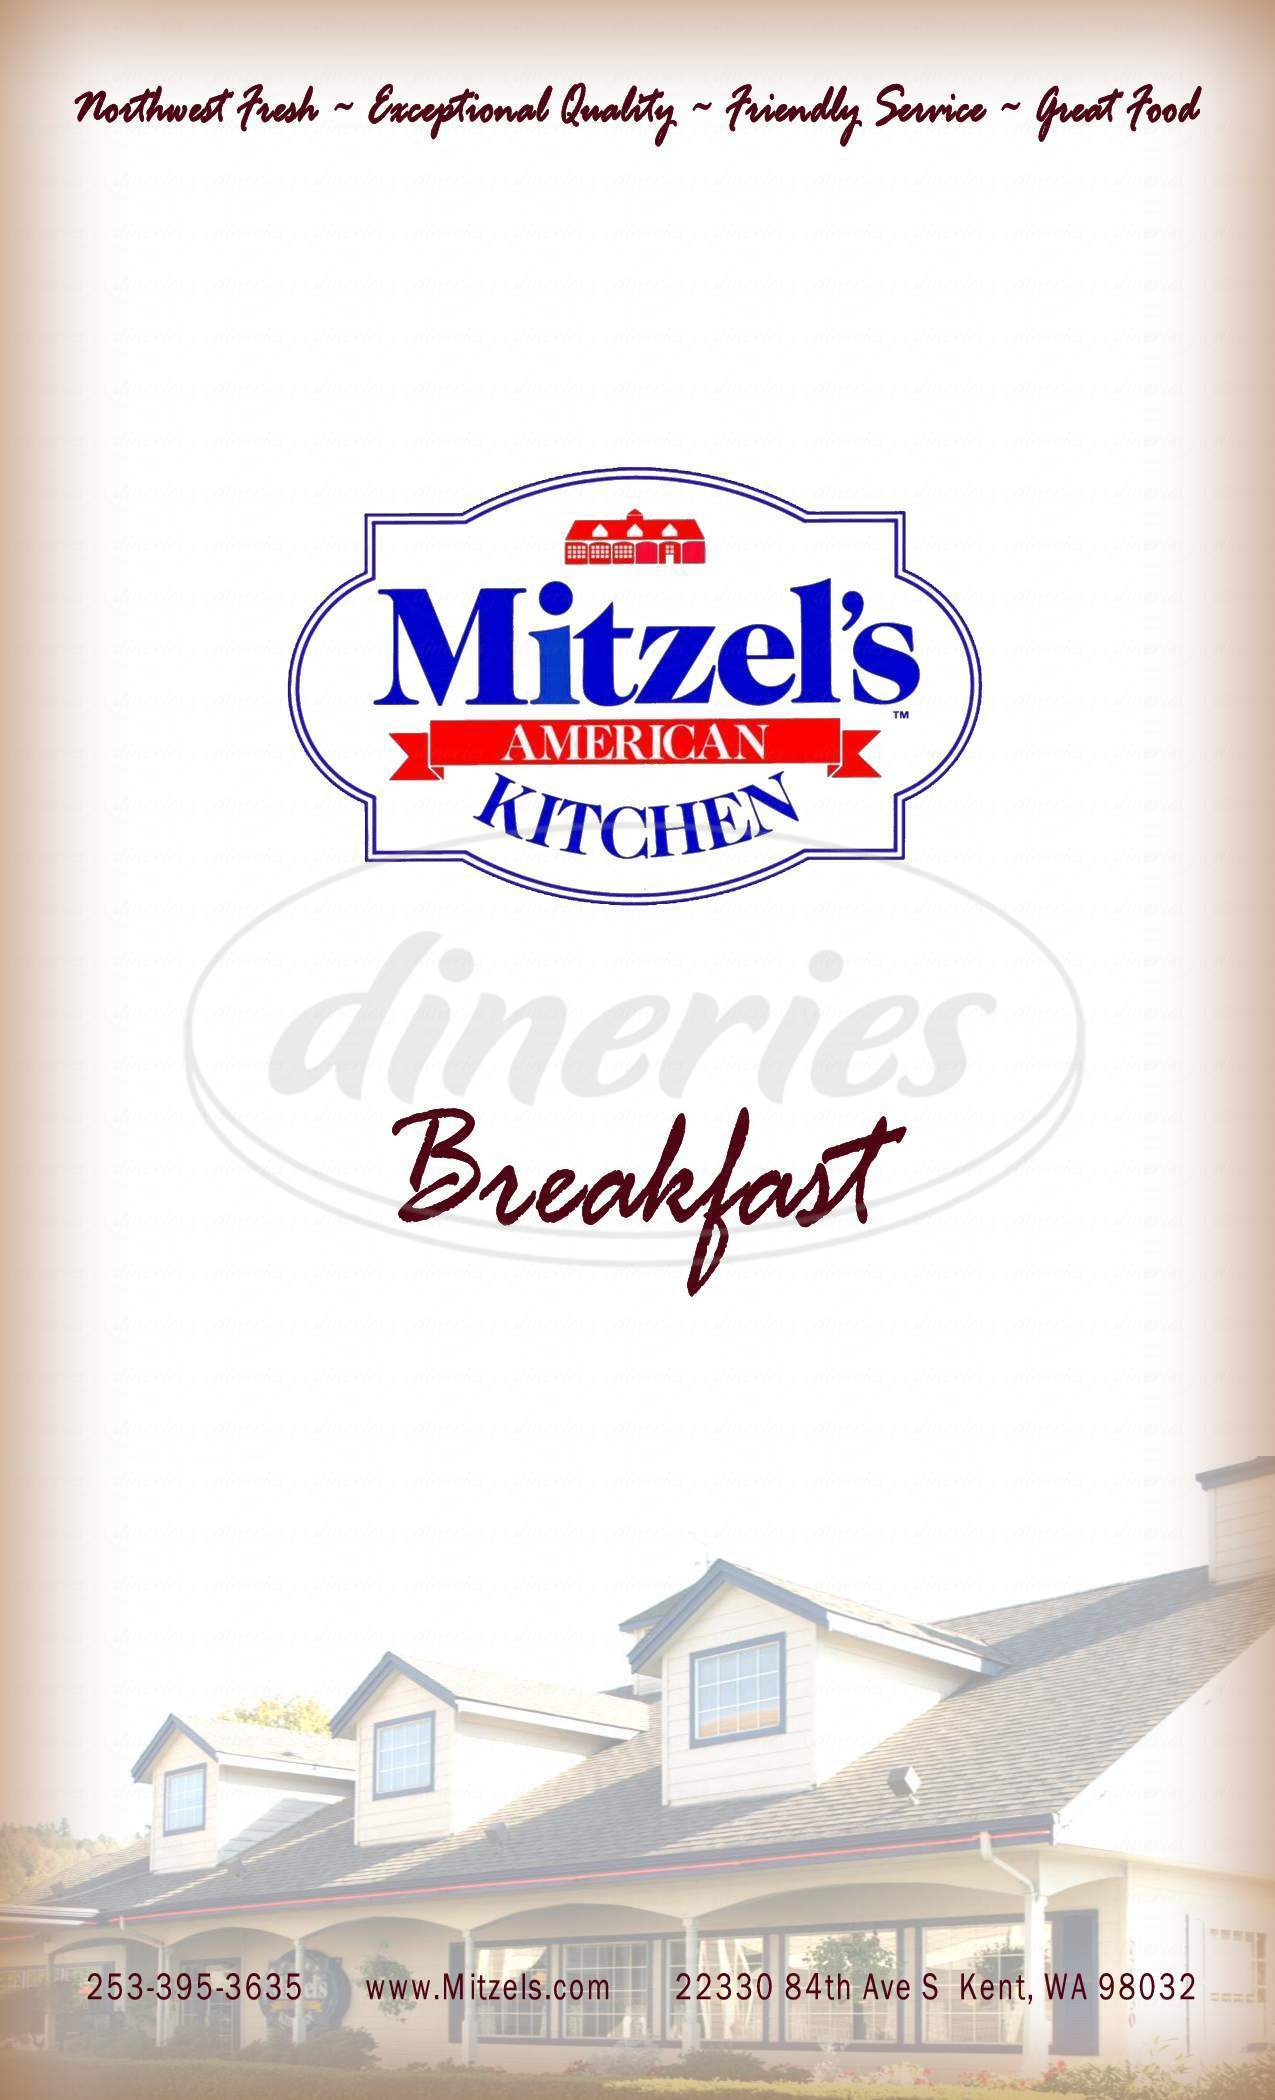 menu for Mitzel's American Kitchen